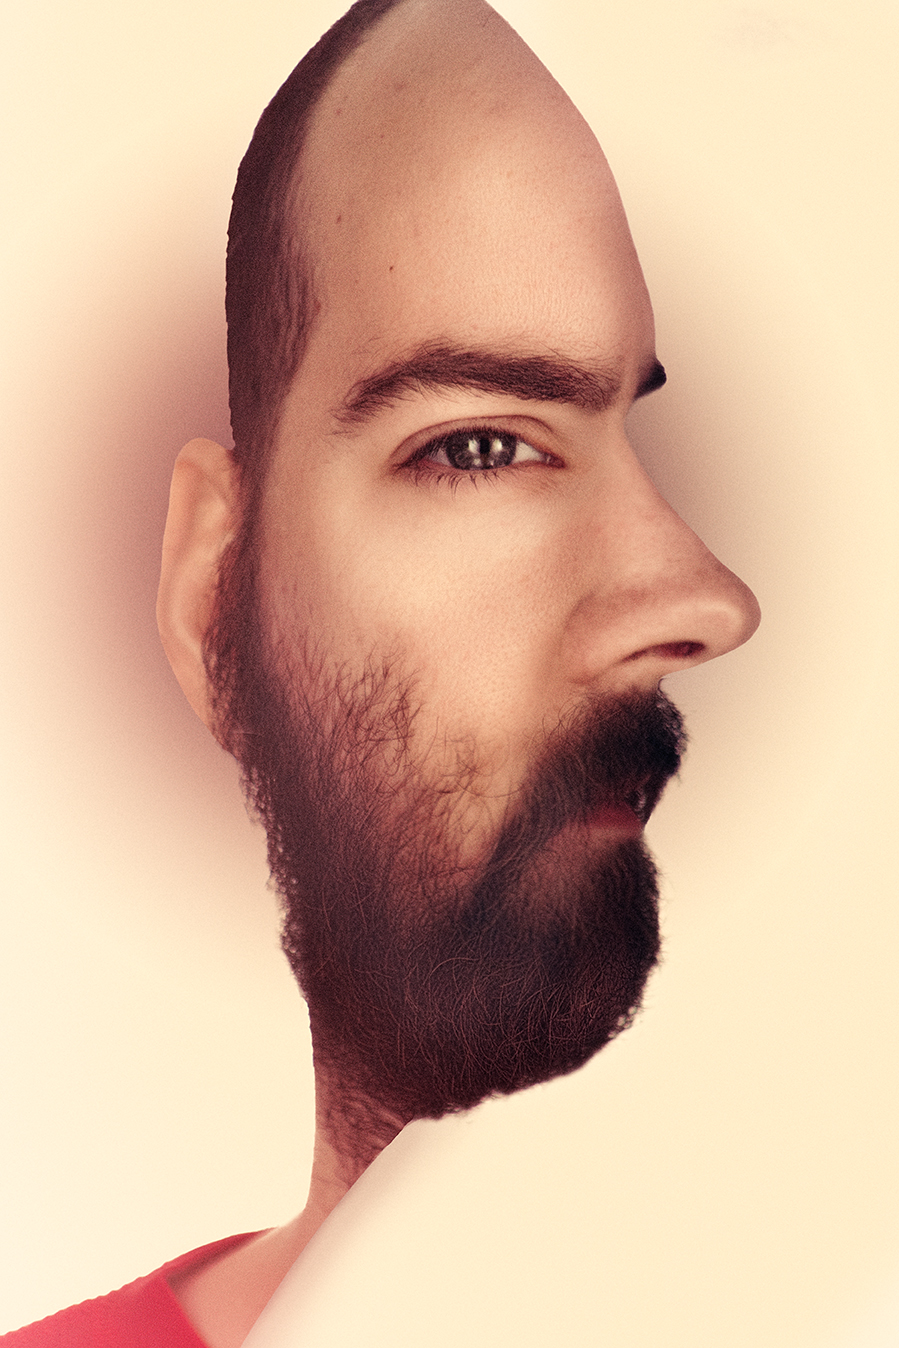 TimothyBaileyPhotography-Optical-illusion-portrait-Alex-web